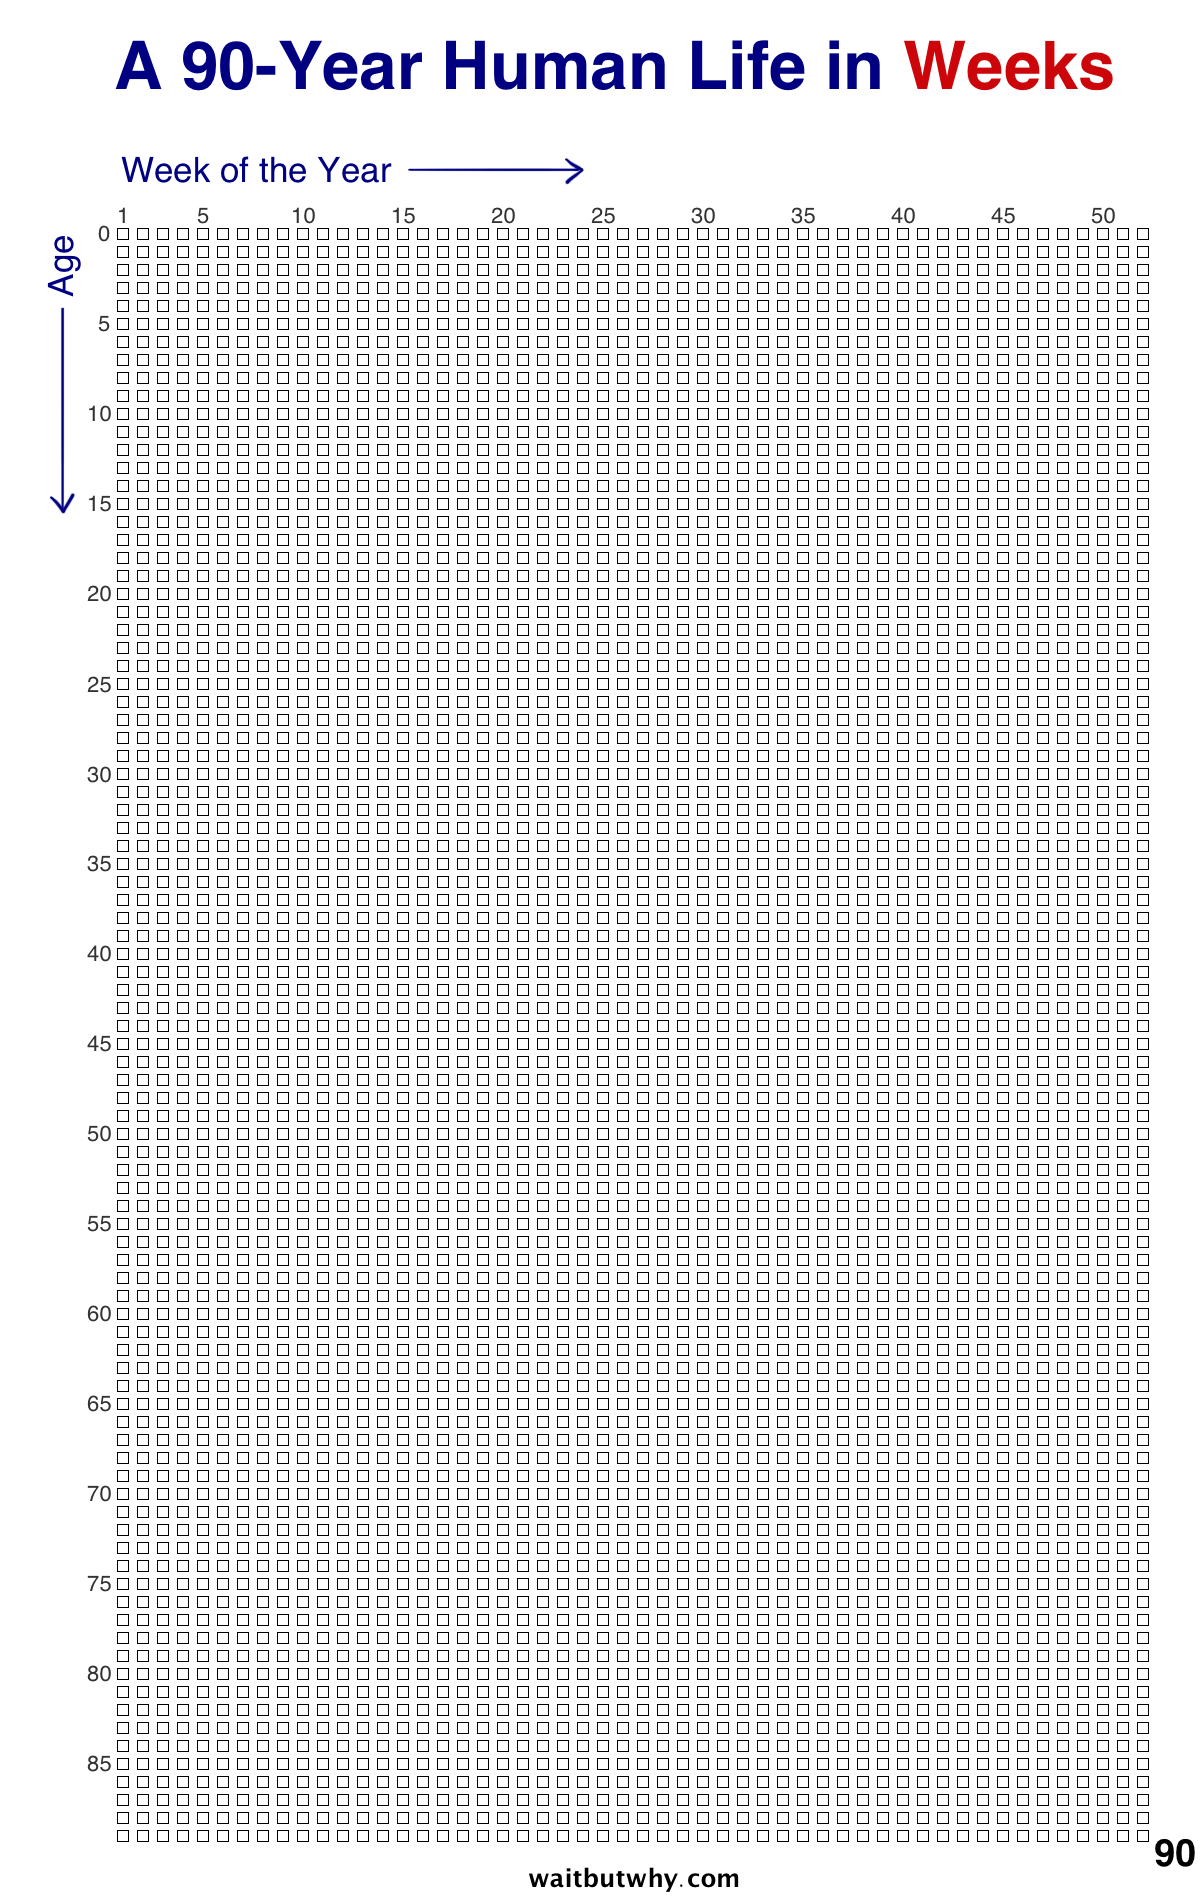 A handy chart of what your life looks like in weeks.